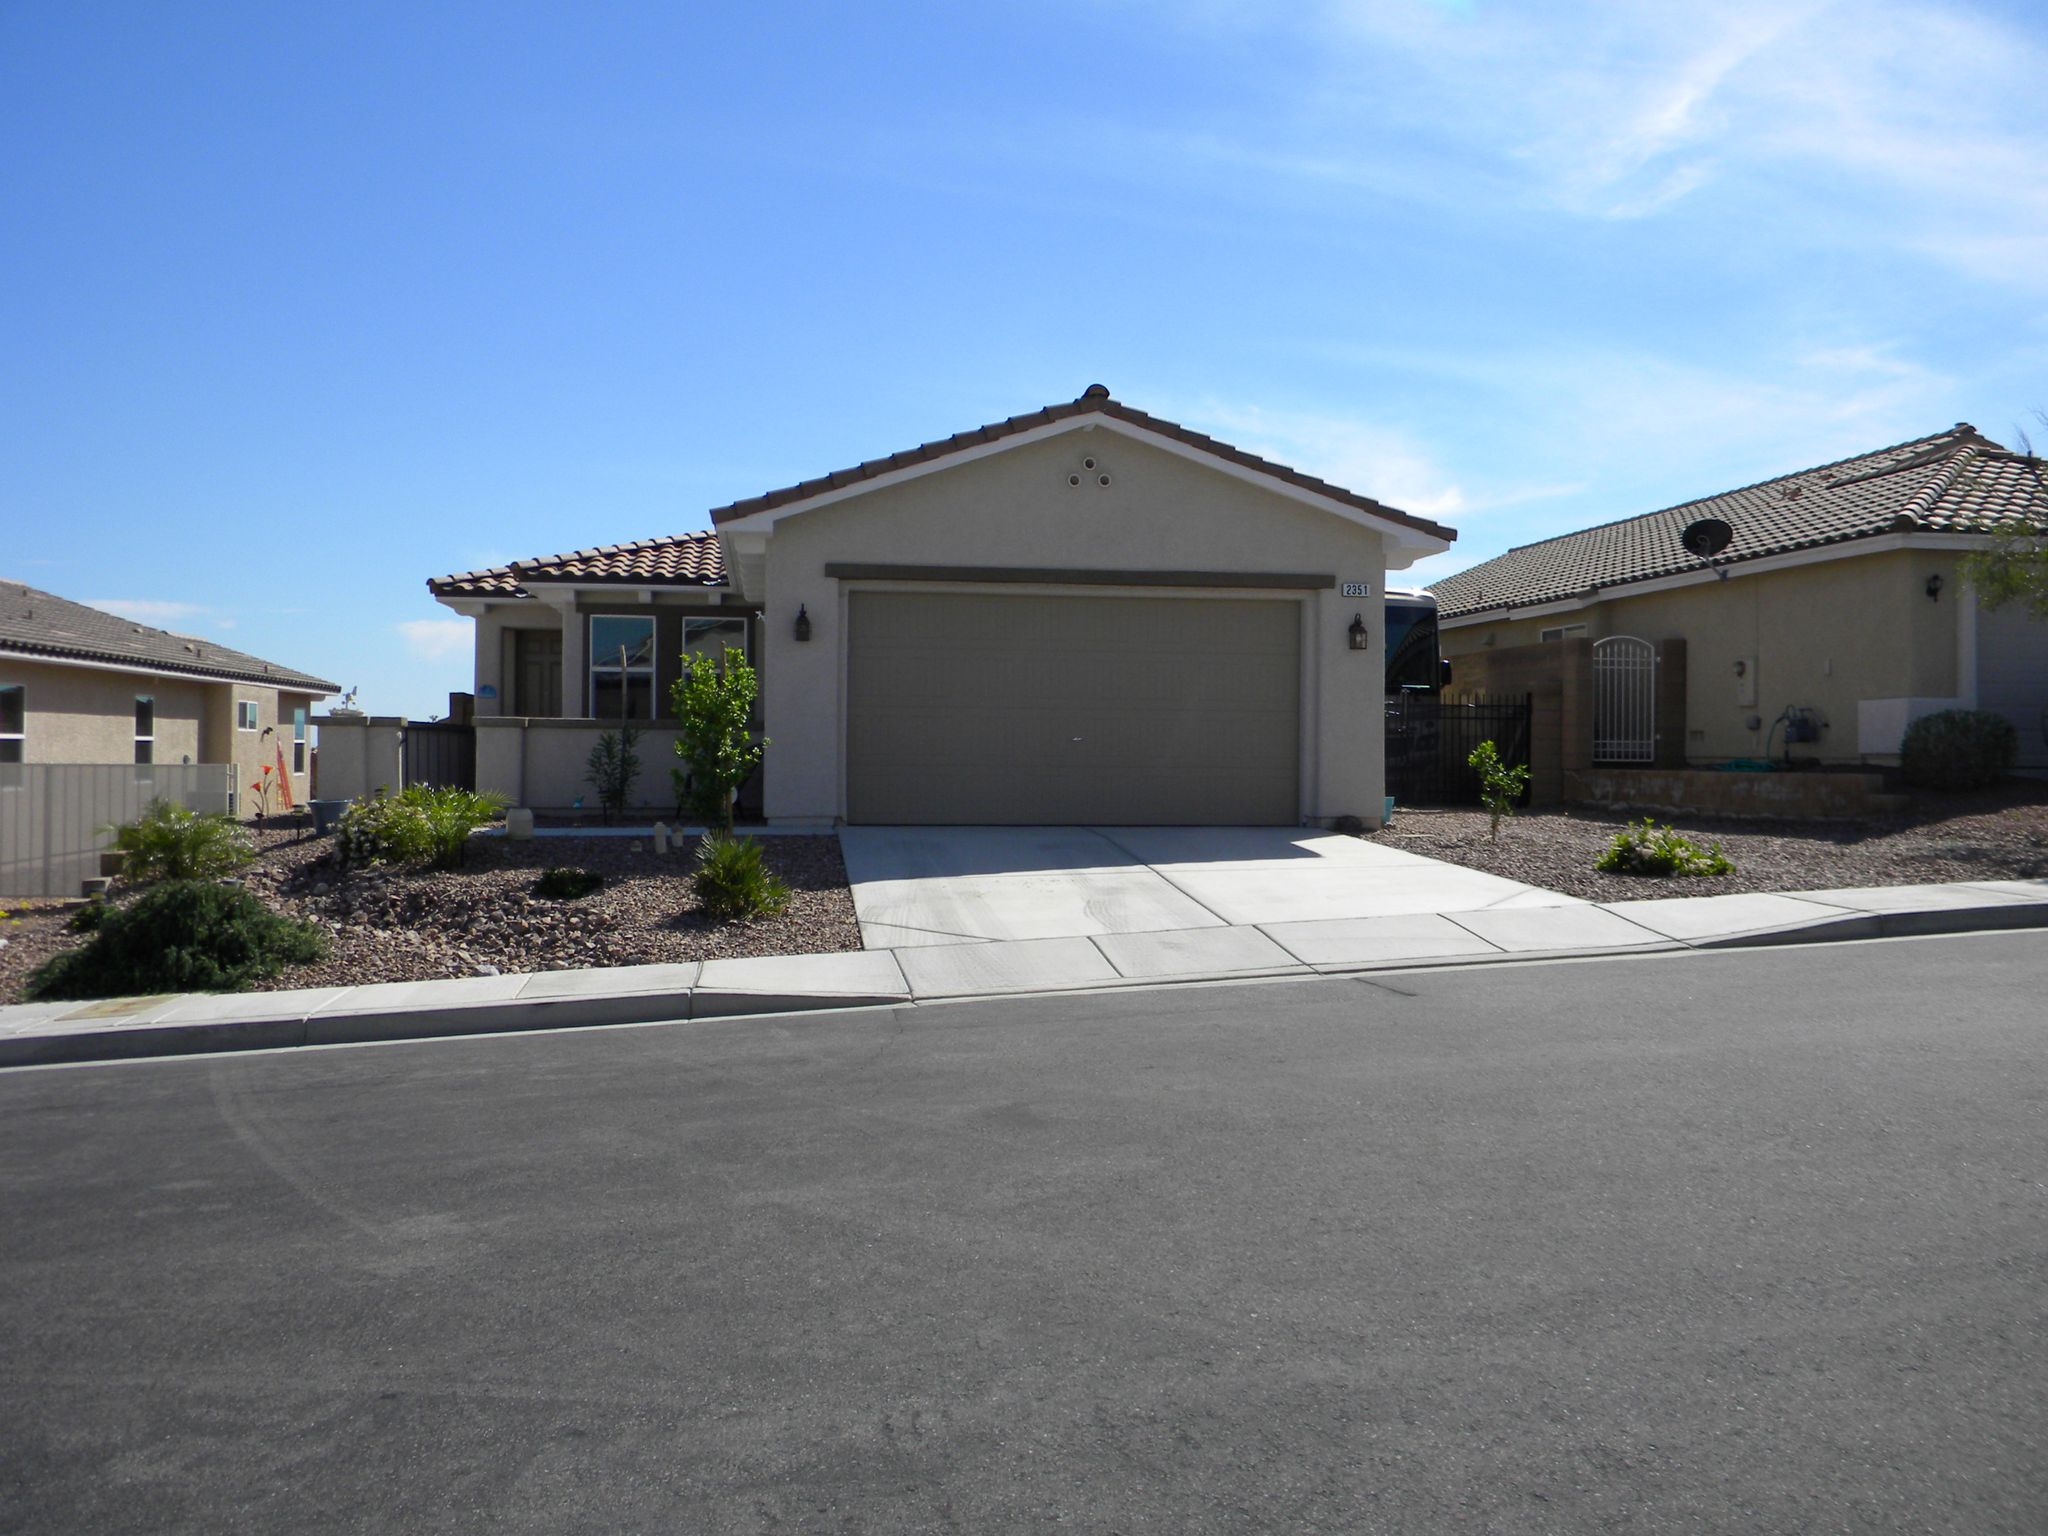 2351 thornwood castle dr for sale laughlin nv